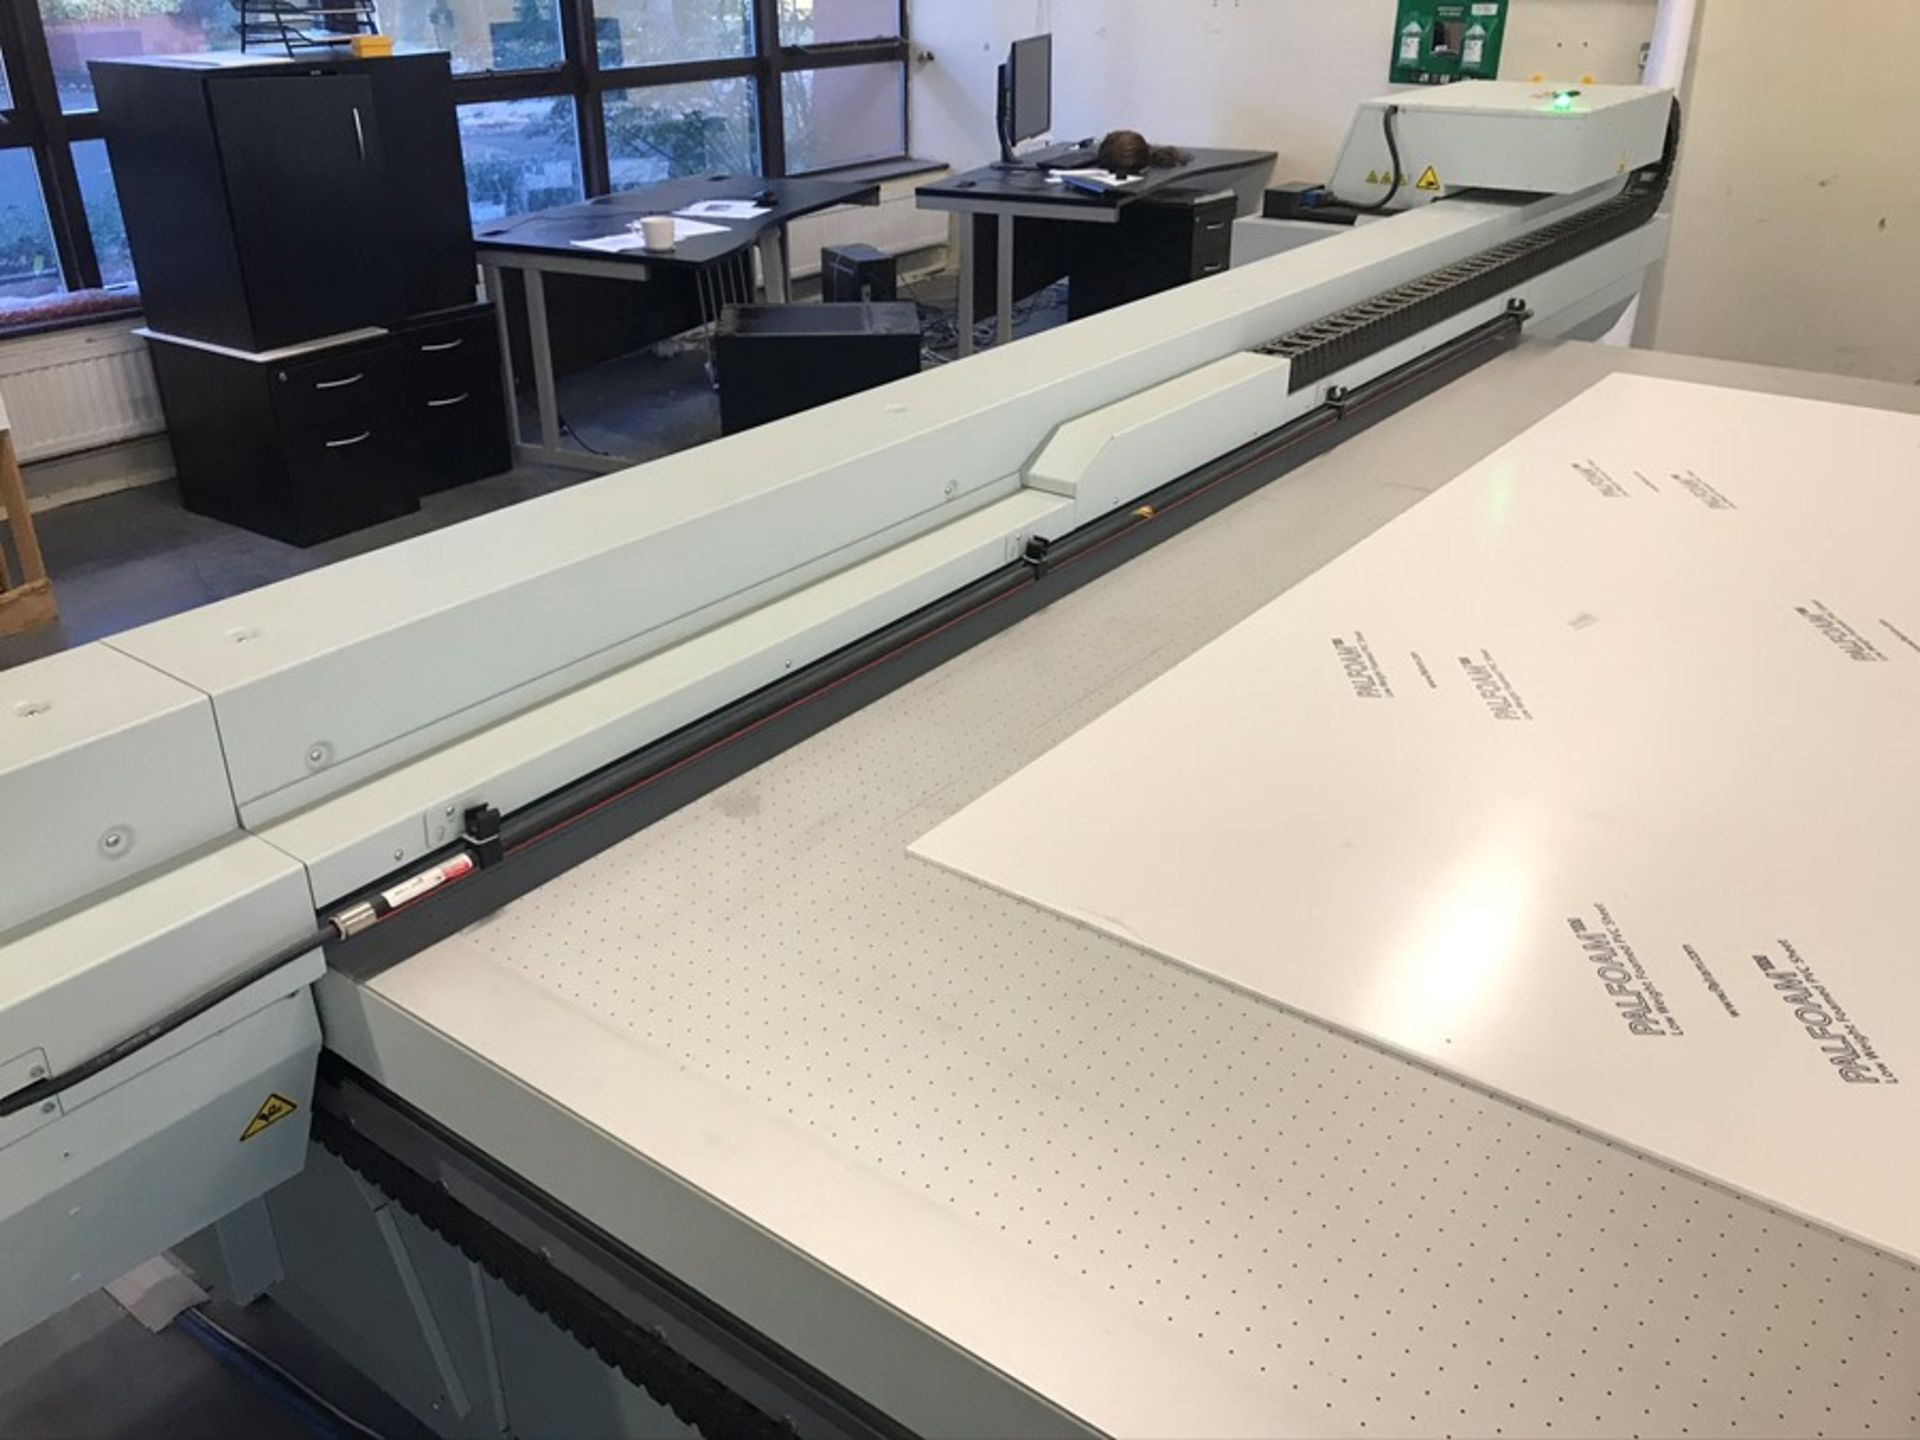 Oce Arizona 660 XT UV flatbed printer (2015) - Image 15 of 22